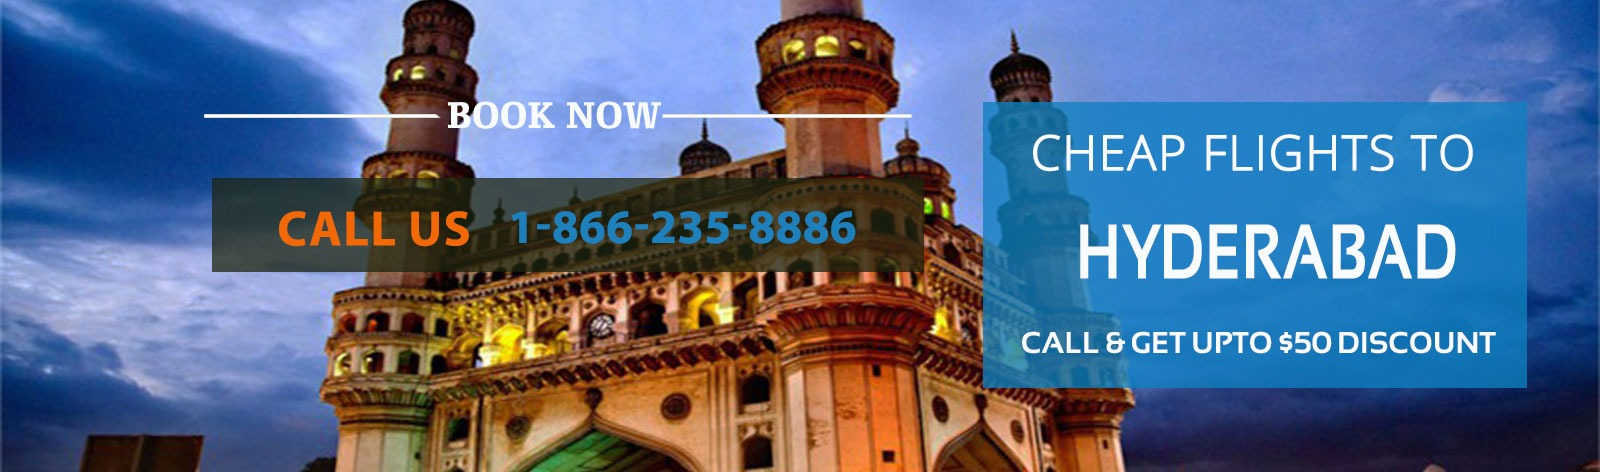 cheap airline tickets from india to usa